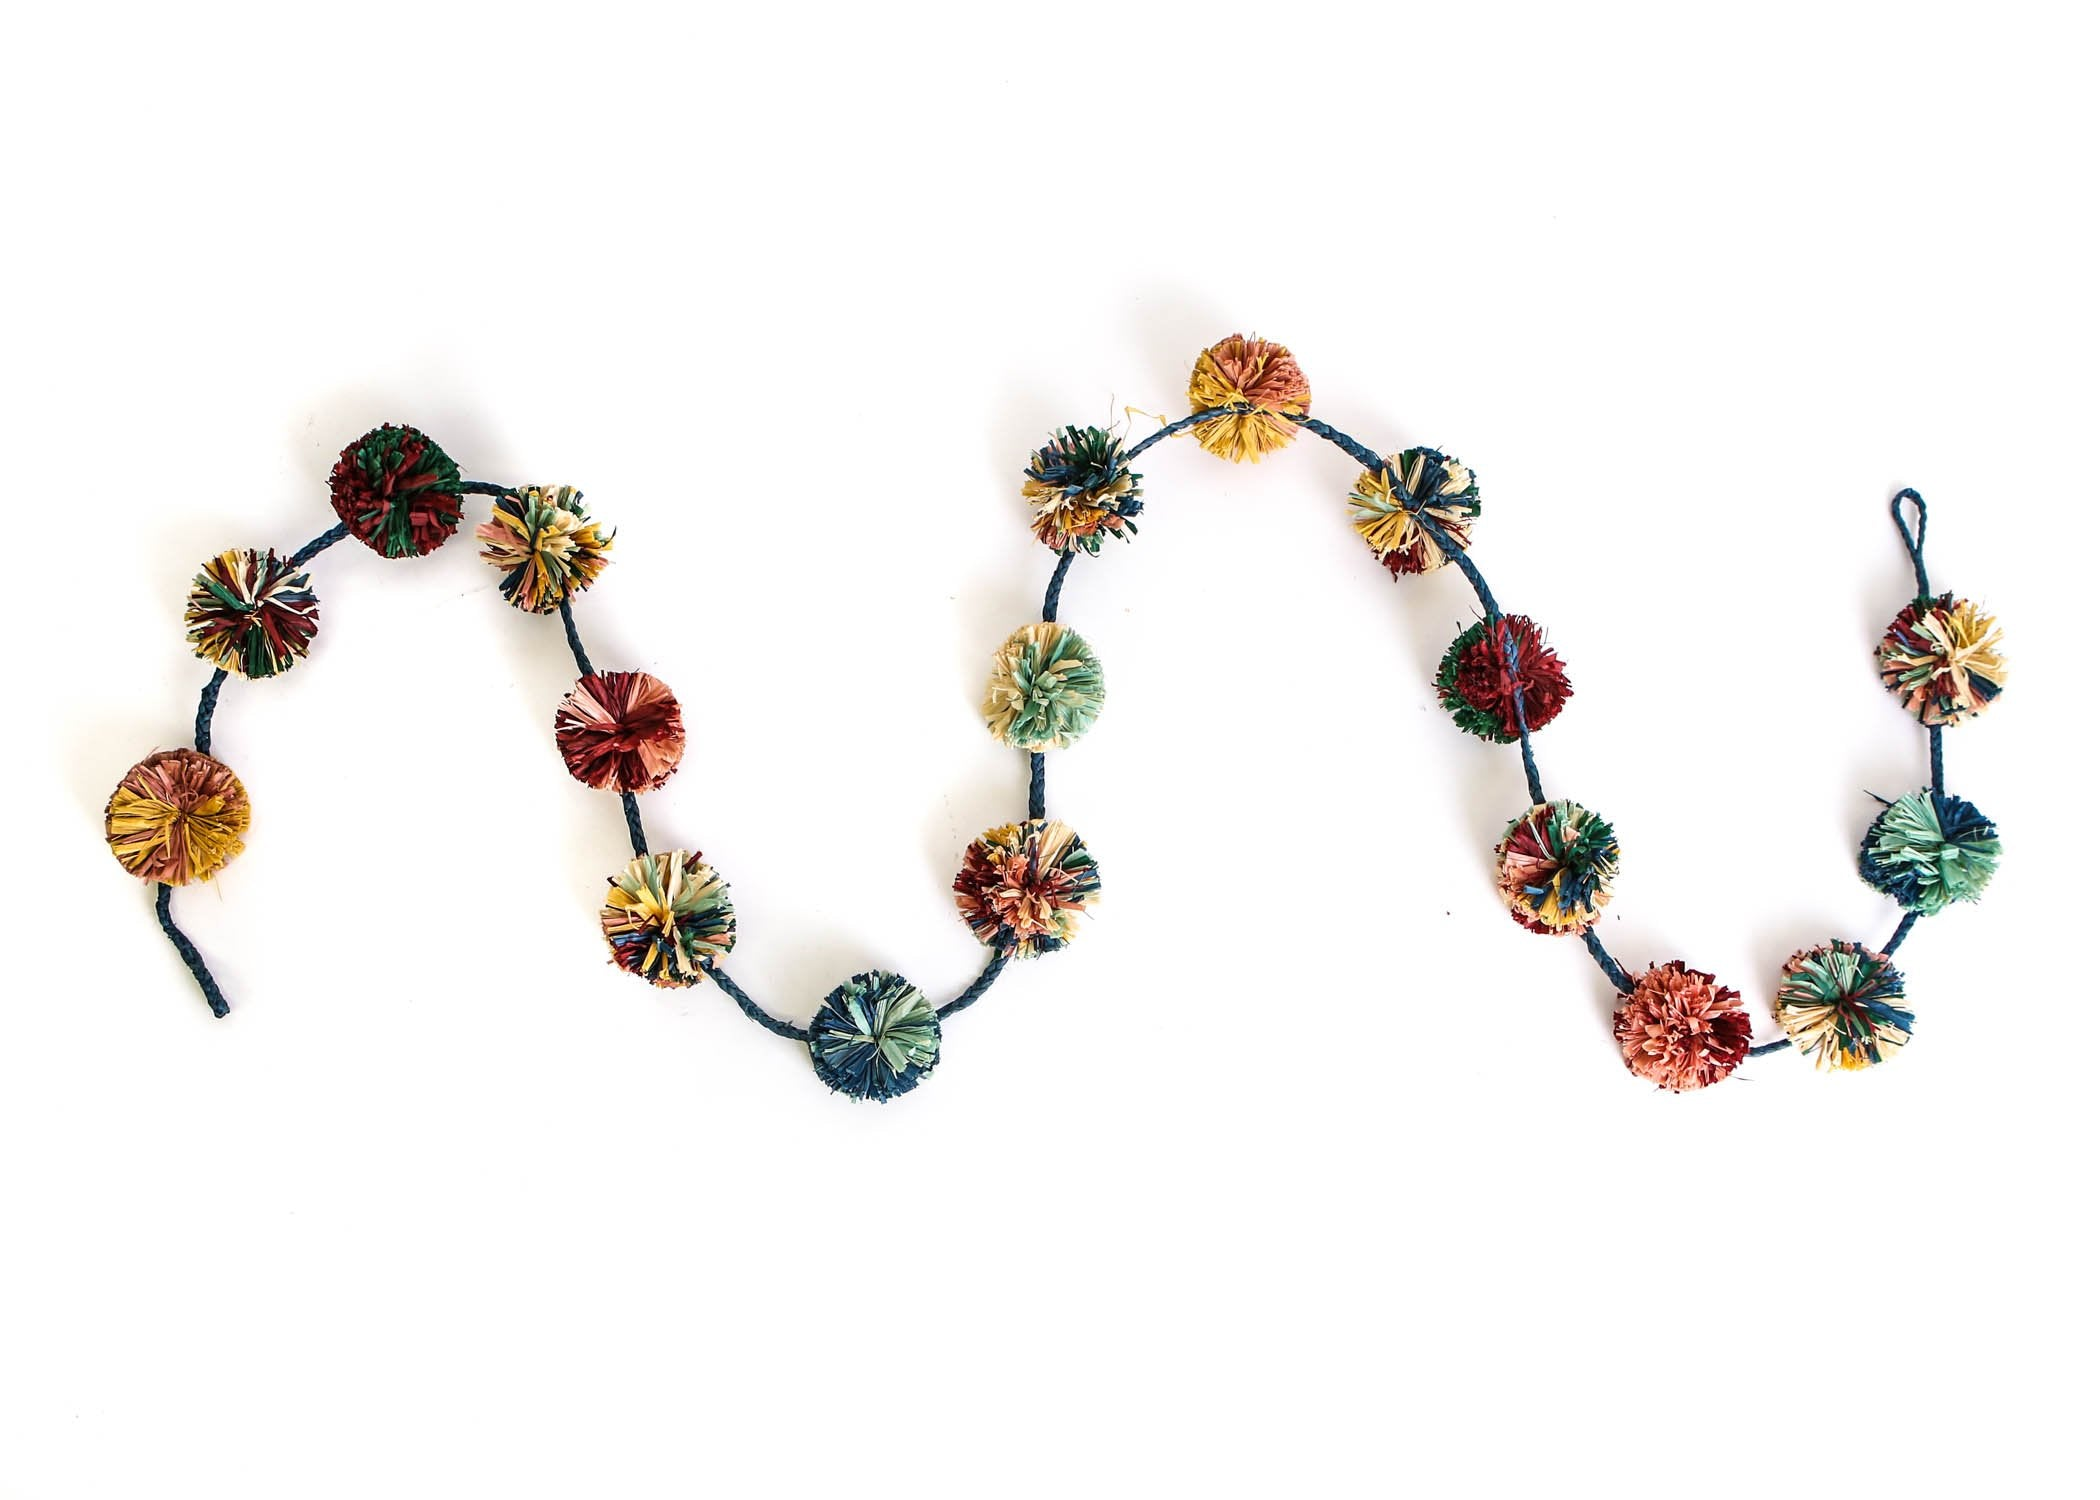 Heathered Multicolor Pom Pom Garland - KAZI